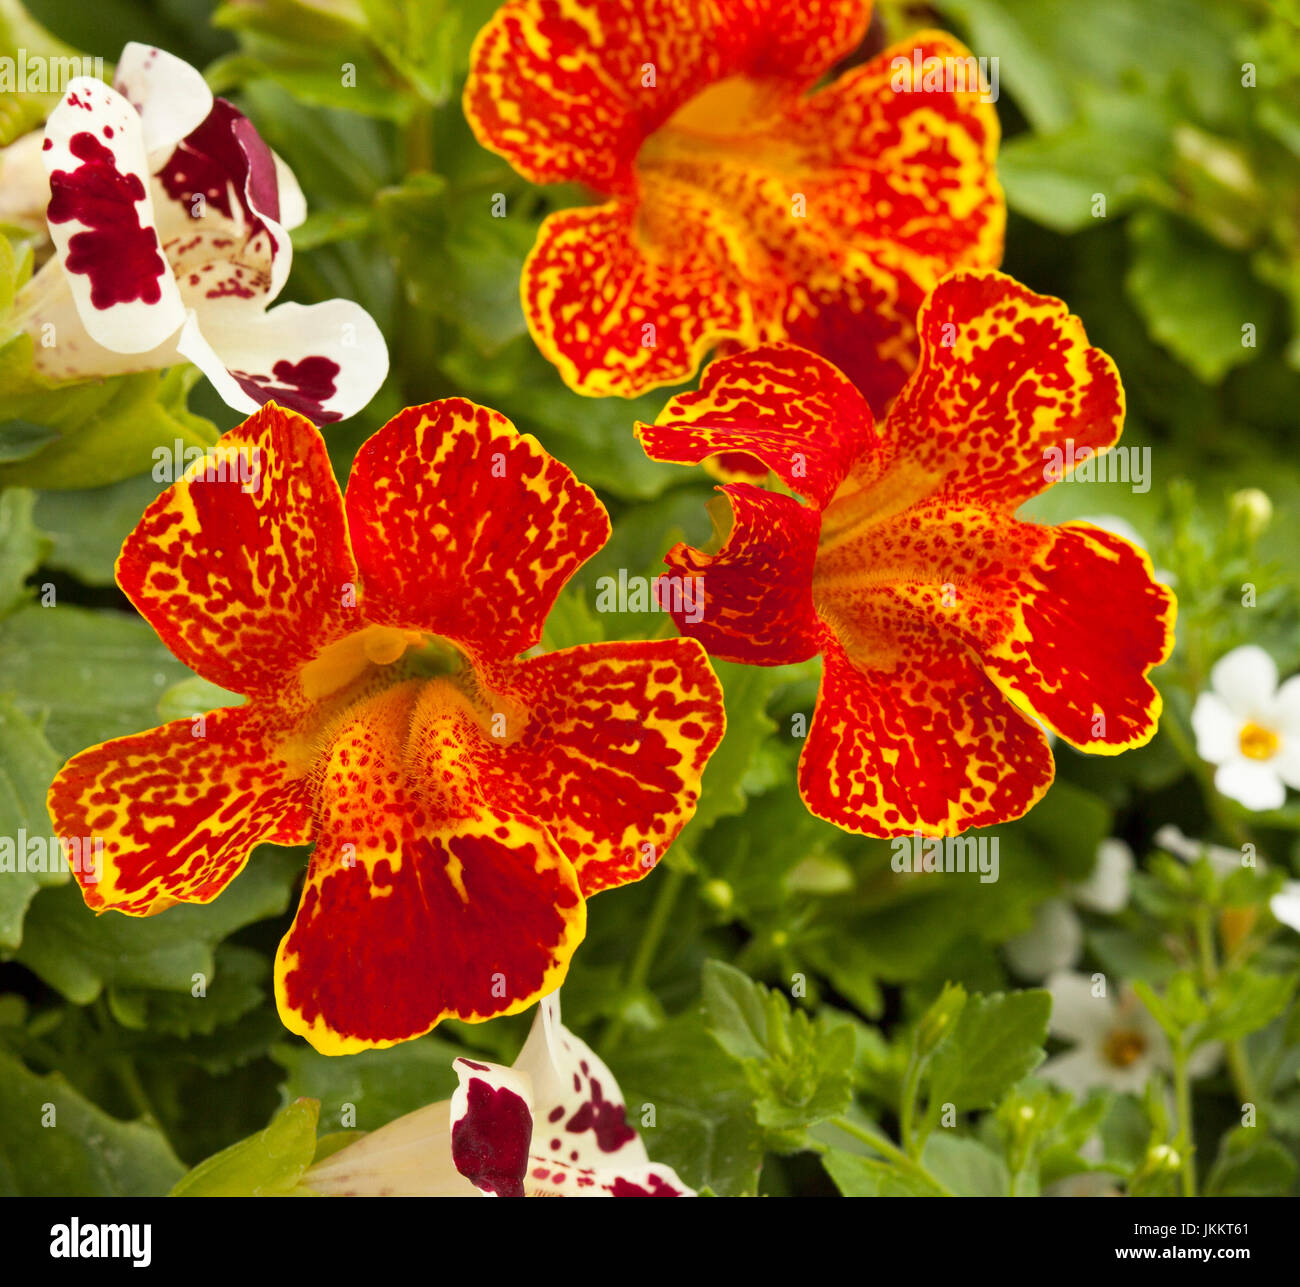 Stunning fire red flowers speckled with yellow of Mimulus Masterpiece, monkey flower, a perennial bedding plant, - Stock Image